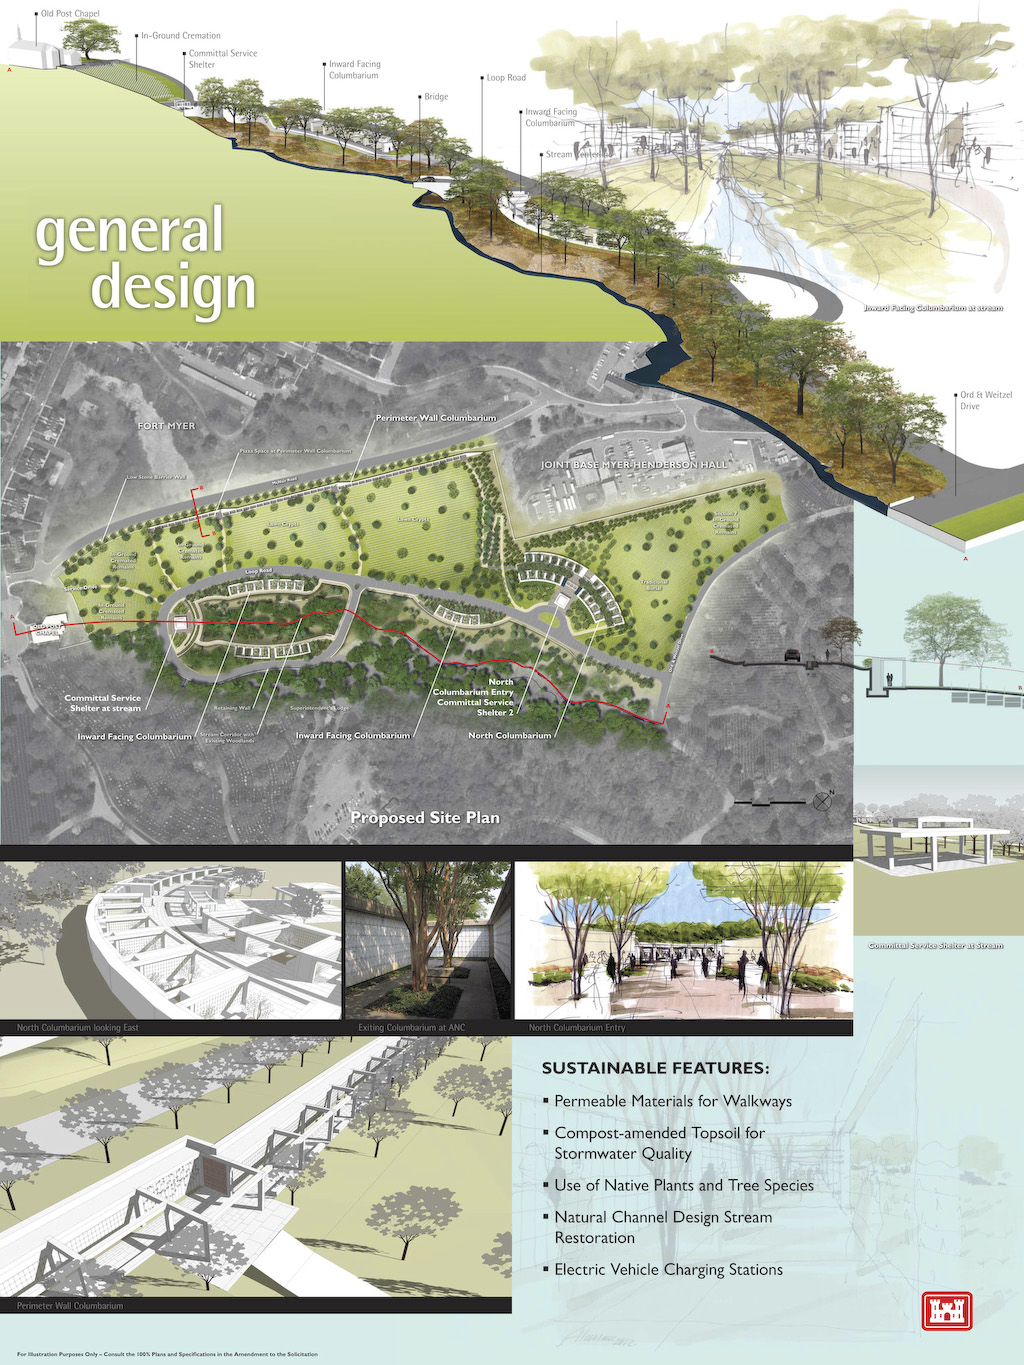 An artist rendition of the general design for the Arlington National Cemetery's Millennium Project. The project will add 30,000 additional burial and niche spaces to the cemetery